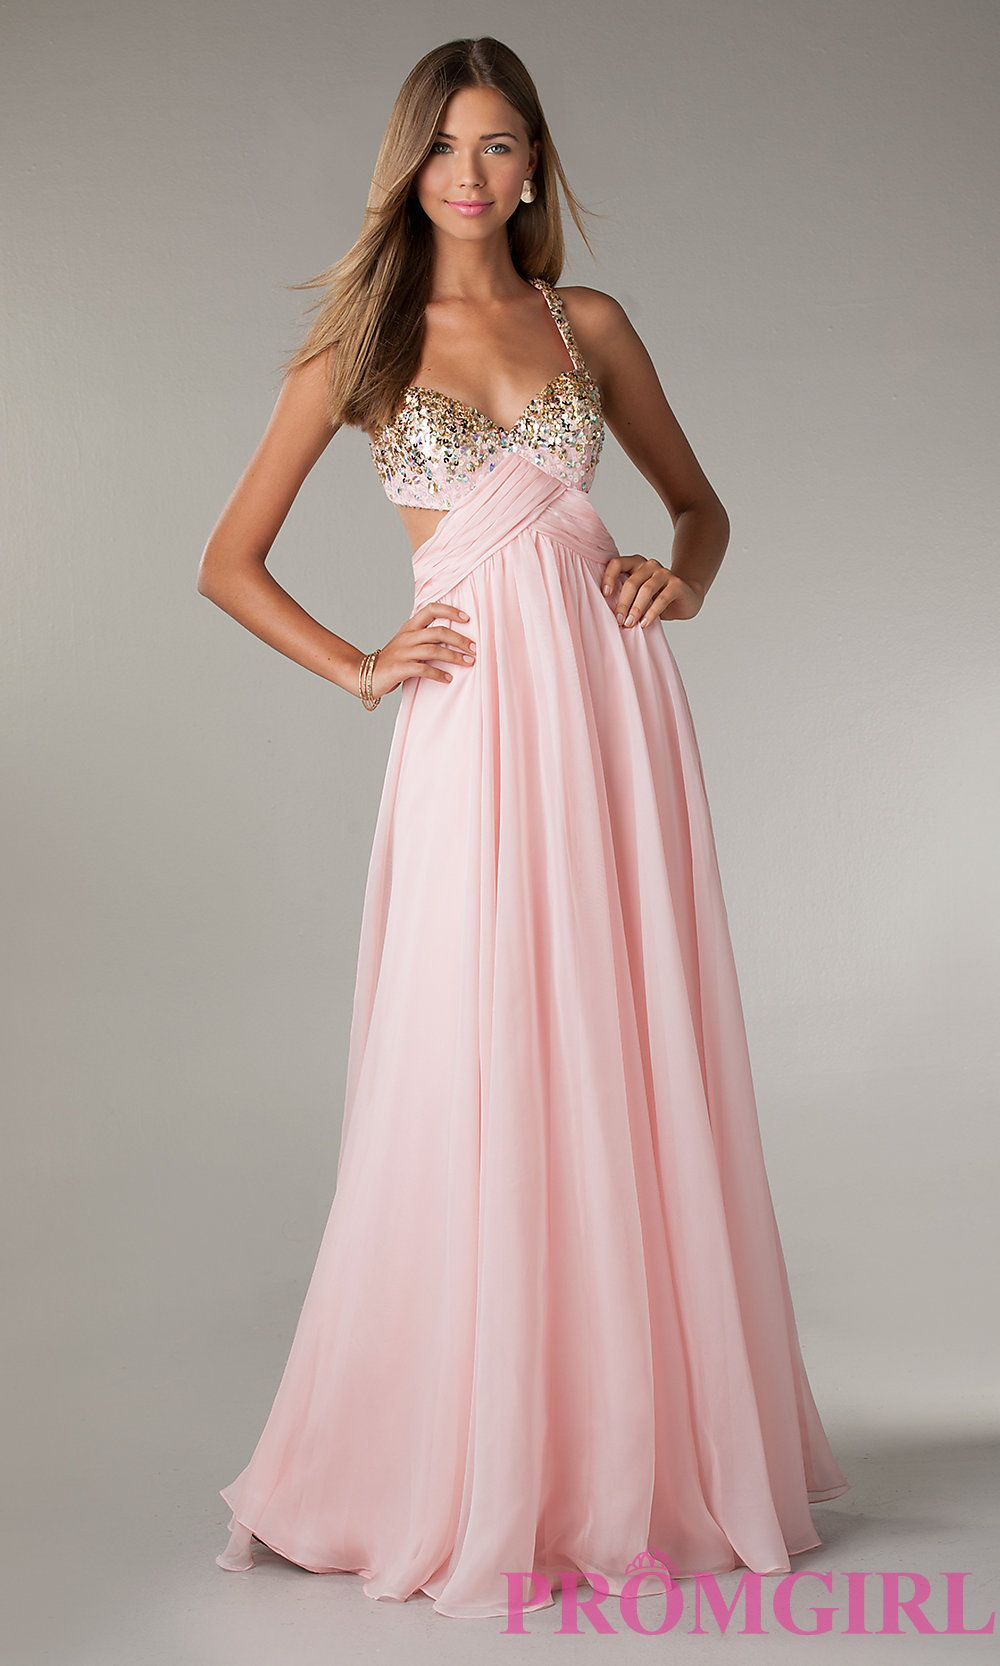 Long Prom Dress Style: FL-P2811 Front Image | Prom dresses ...